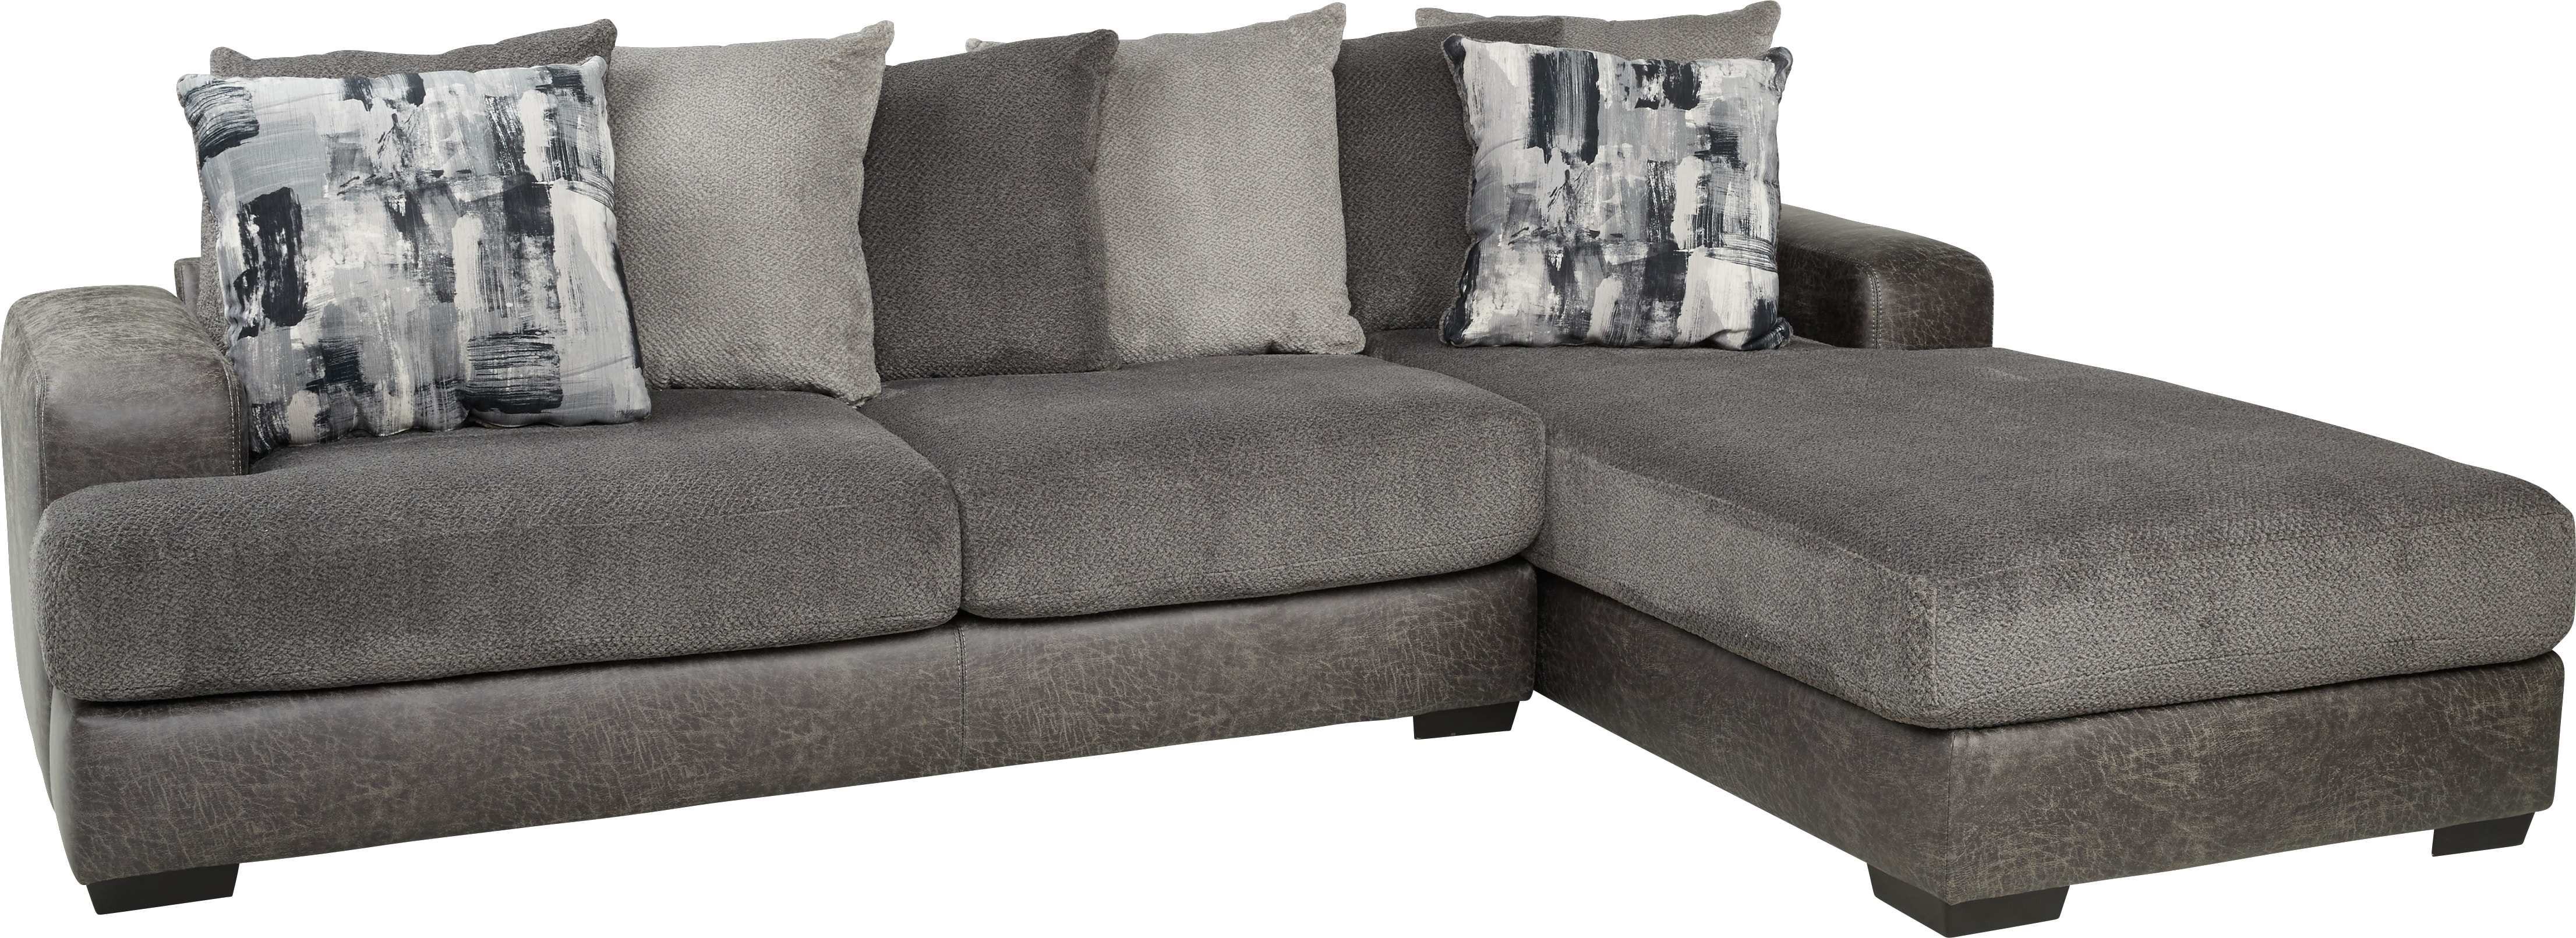 Foster Square Graphite 2 Pc Sectional – Living Room Sets (Gray) Pertaining To Mcdade Graphite Sofa Chairs (Image 4 of 25)